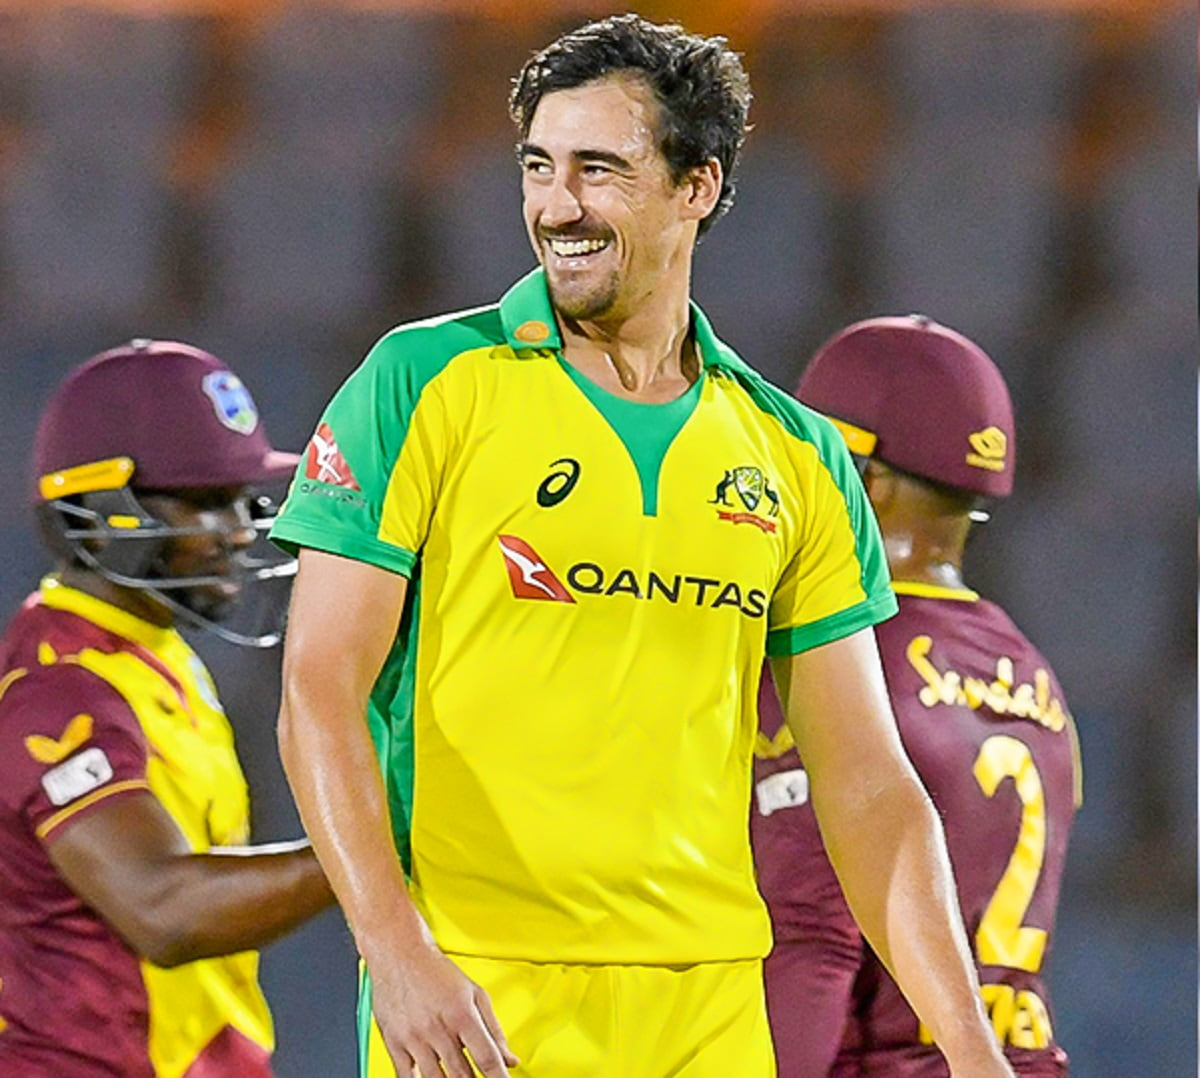 WI vs AUS - Match suspended due to Covid-19